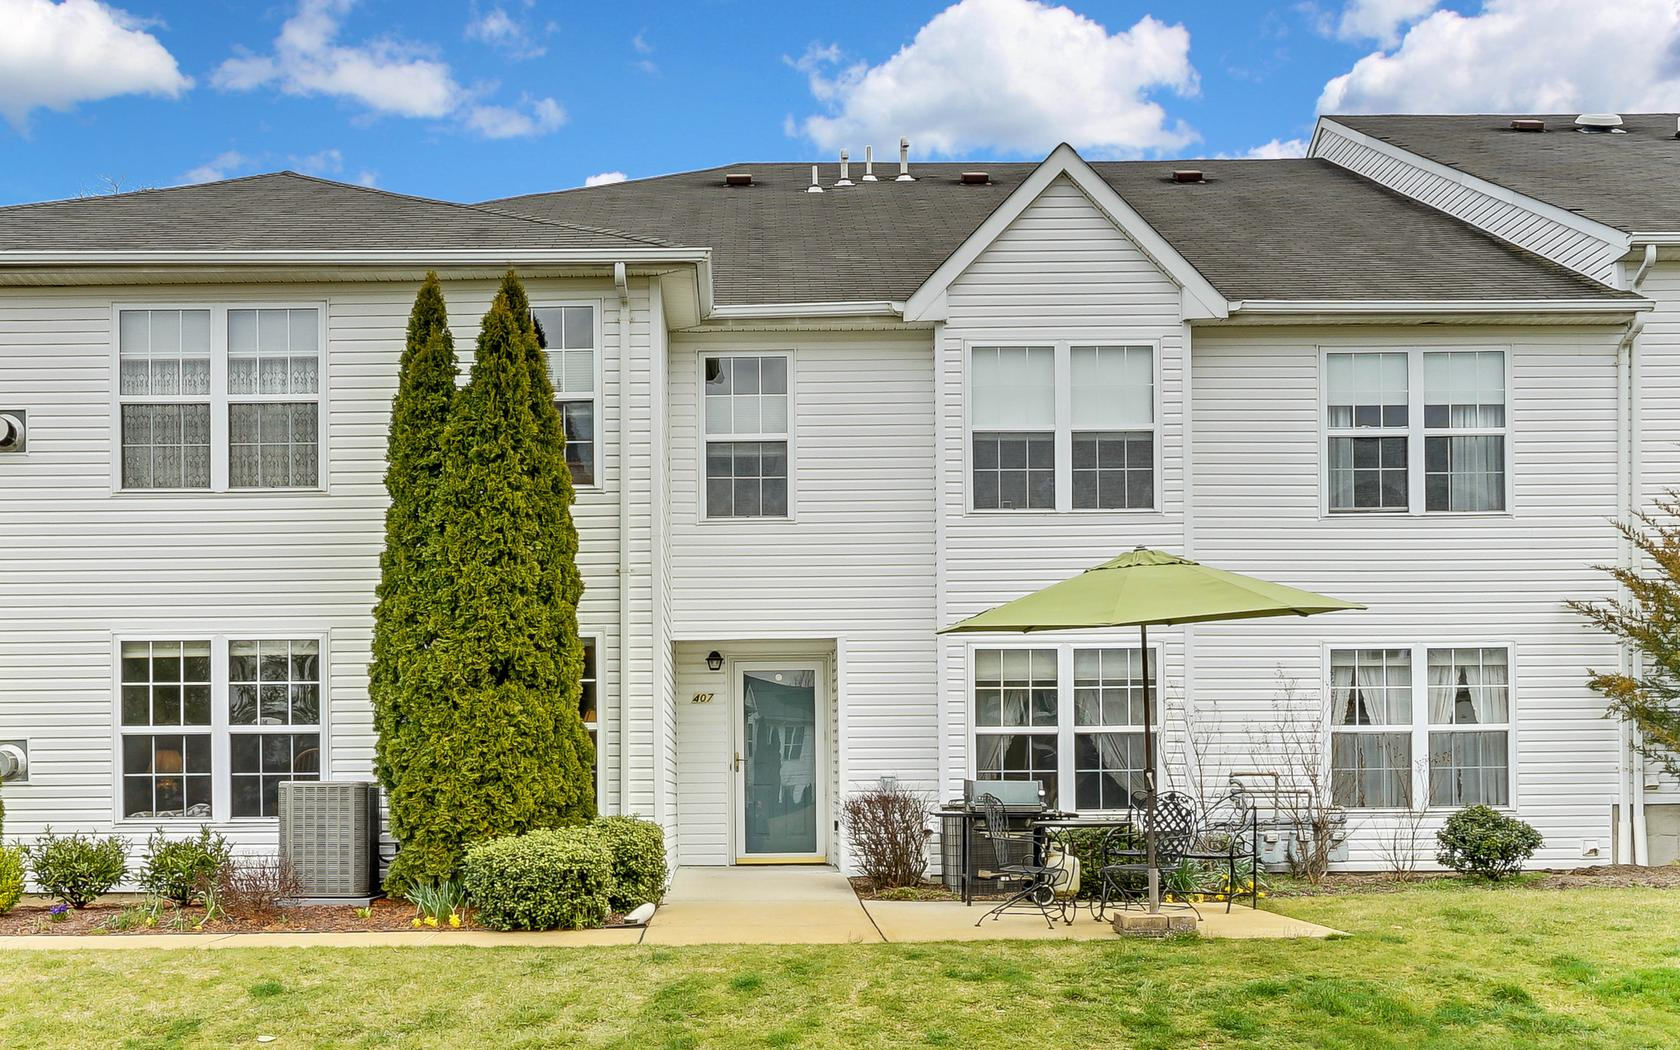 Single Family Home for Sale at Lovely 2 Bedroom Condo 407 Deuce Dr Wall, New Jersey 07719 United States